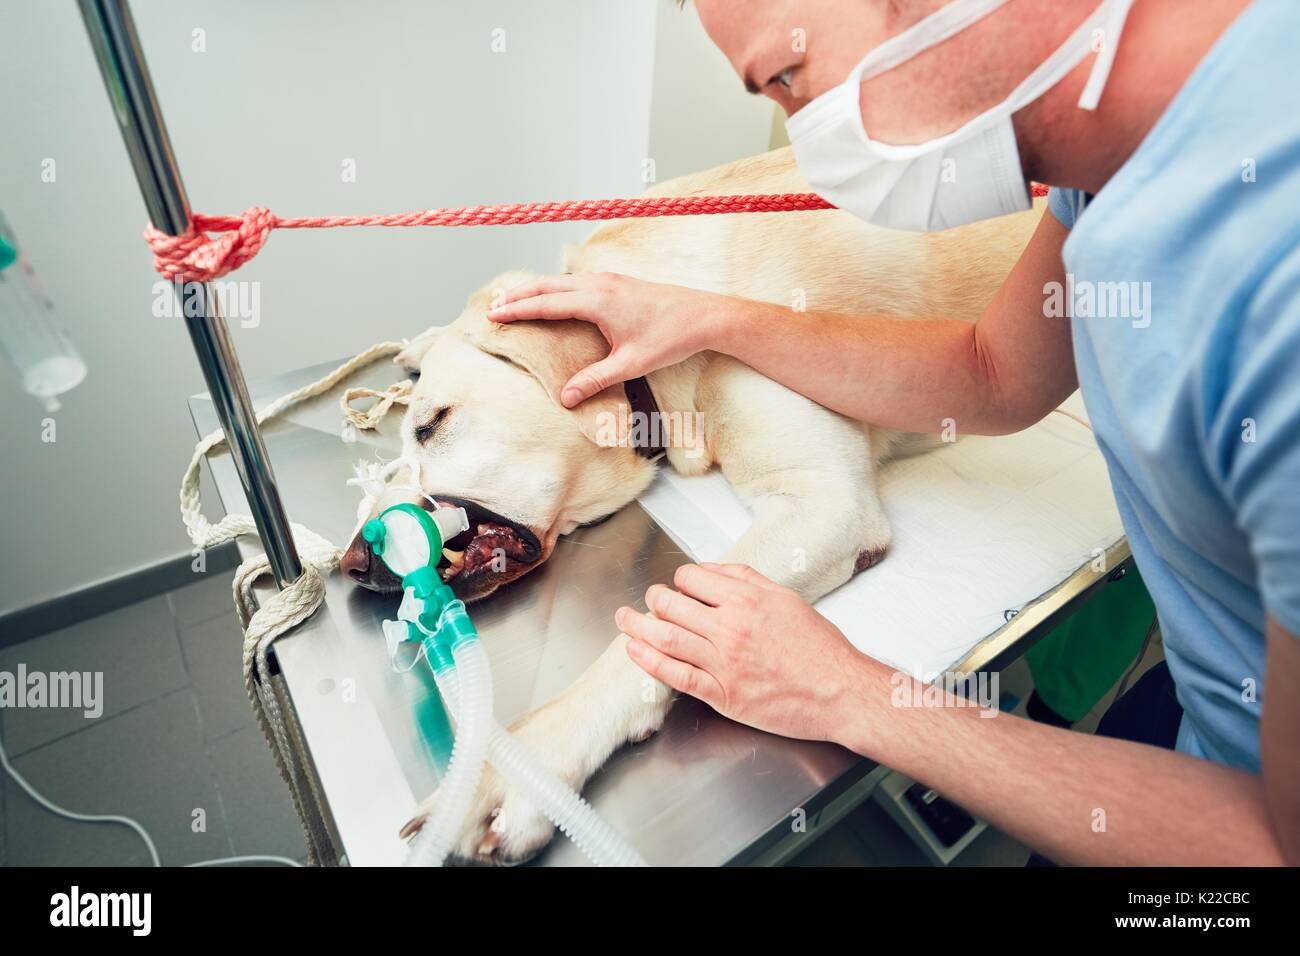 Old labrador retriever in animal hospital. Veterinarian is preparing for a dog surgery. - Stock Image